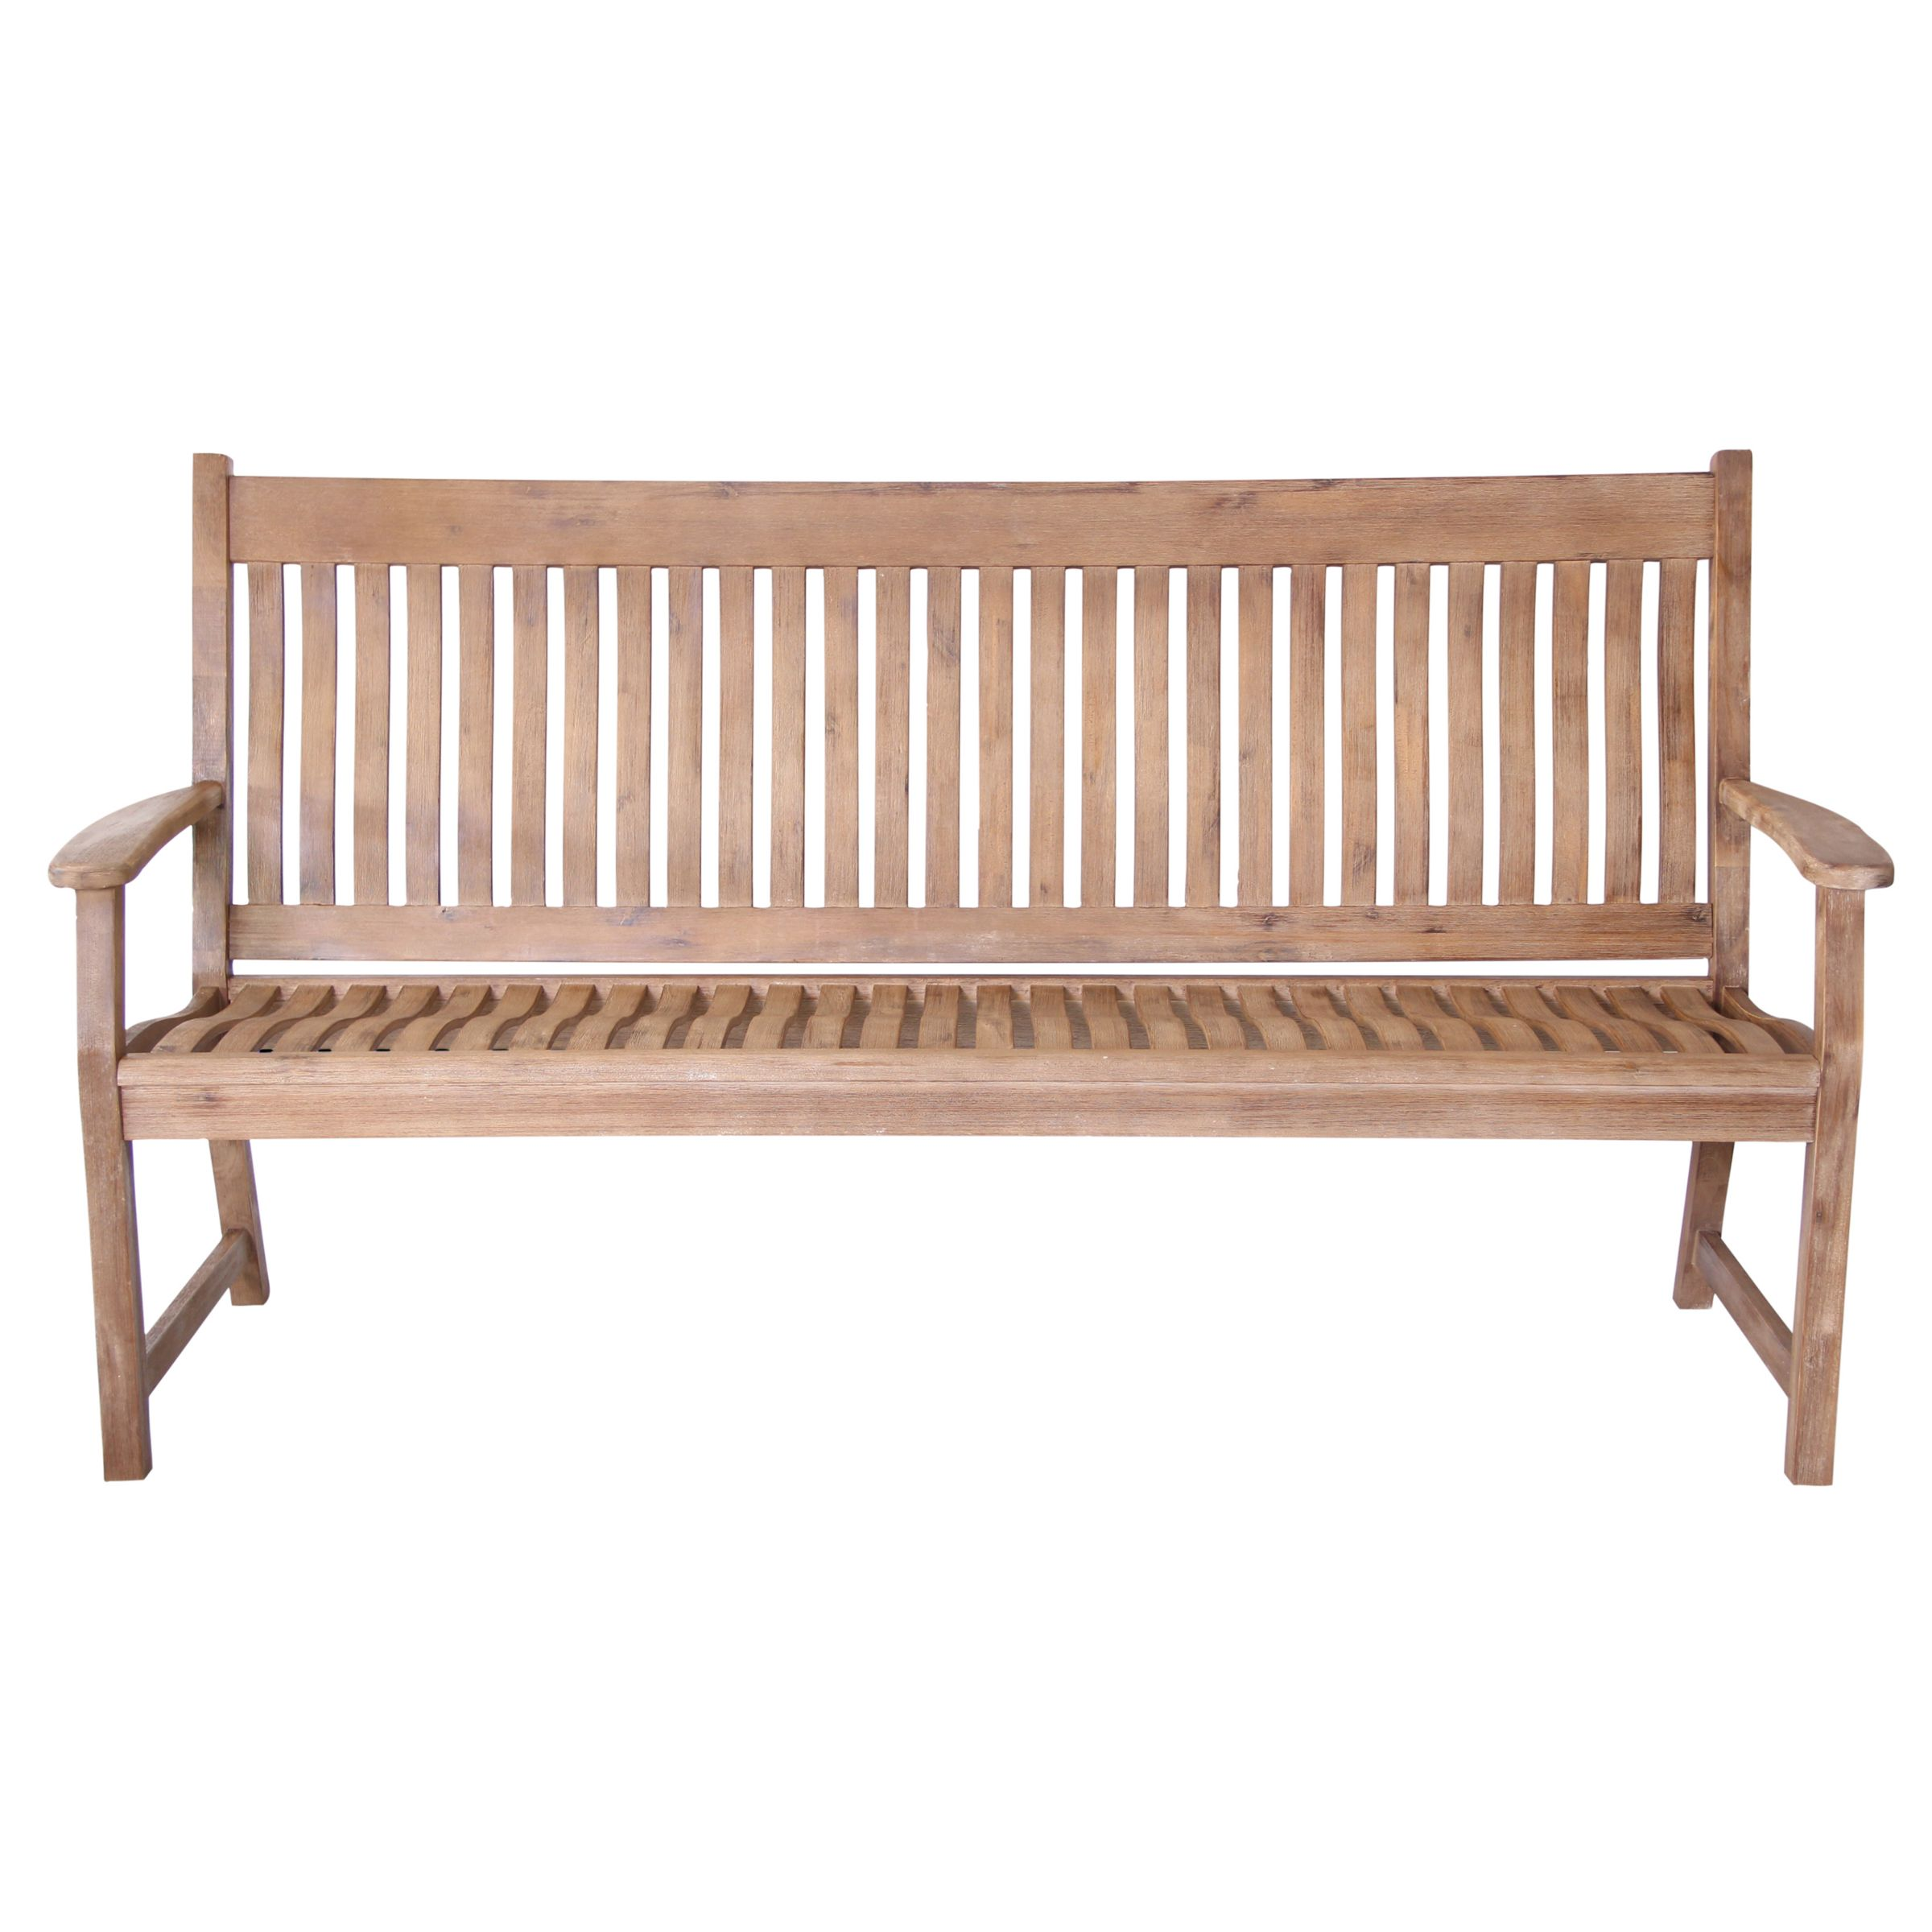 LG Outdoor LG Outdoor Hanoi Curved 3-Seat Bench, FSC-certified (Acacia)